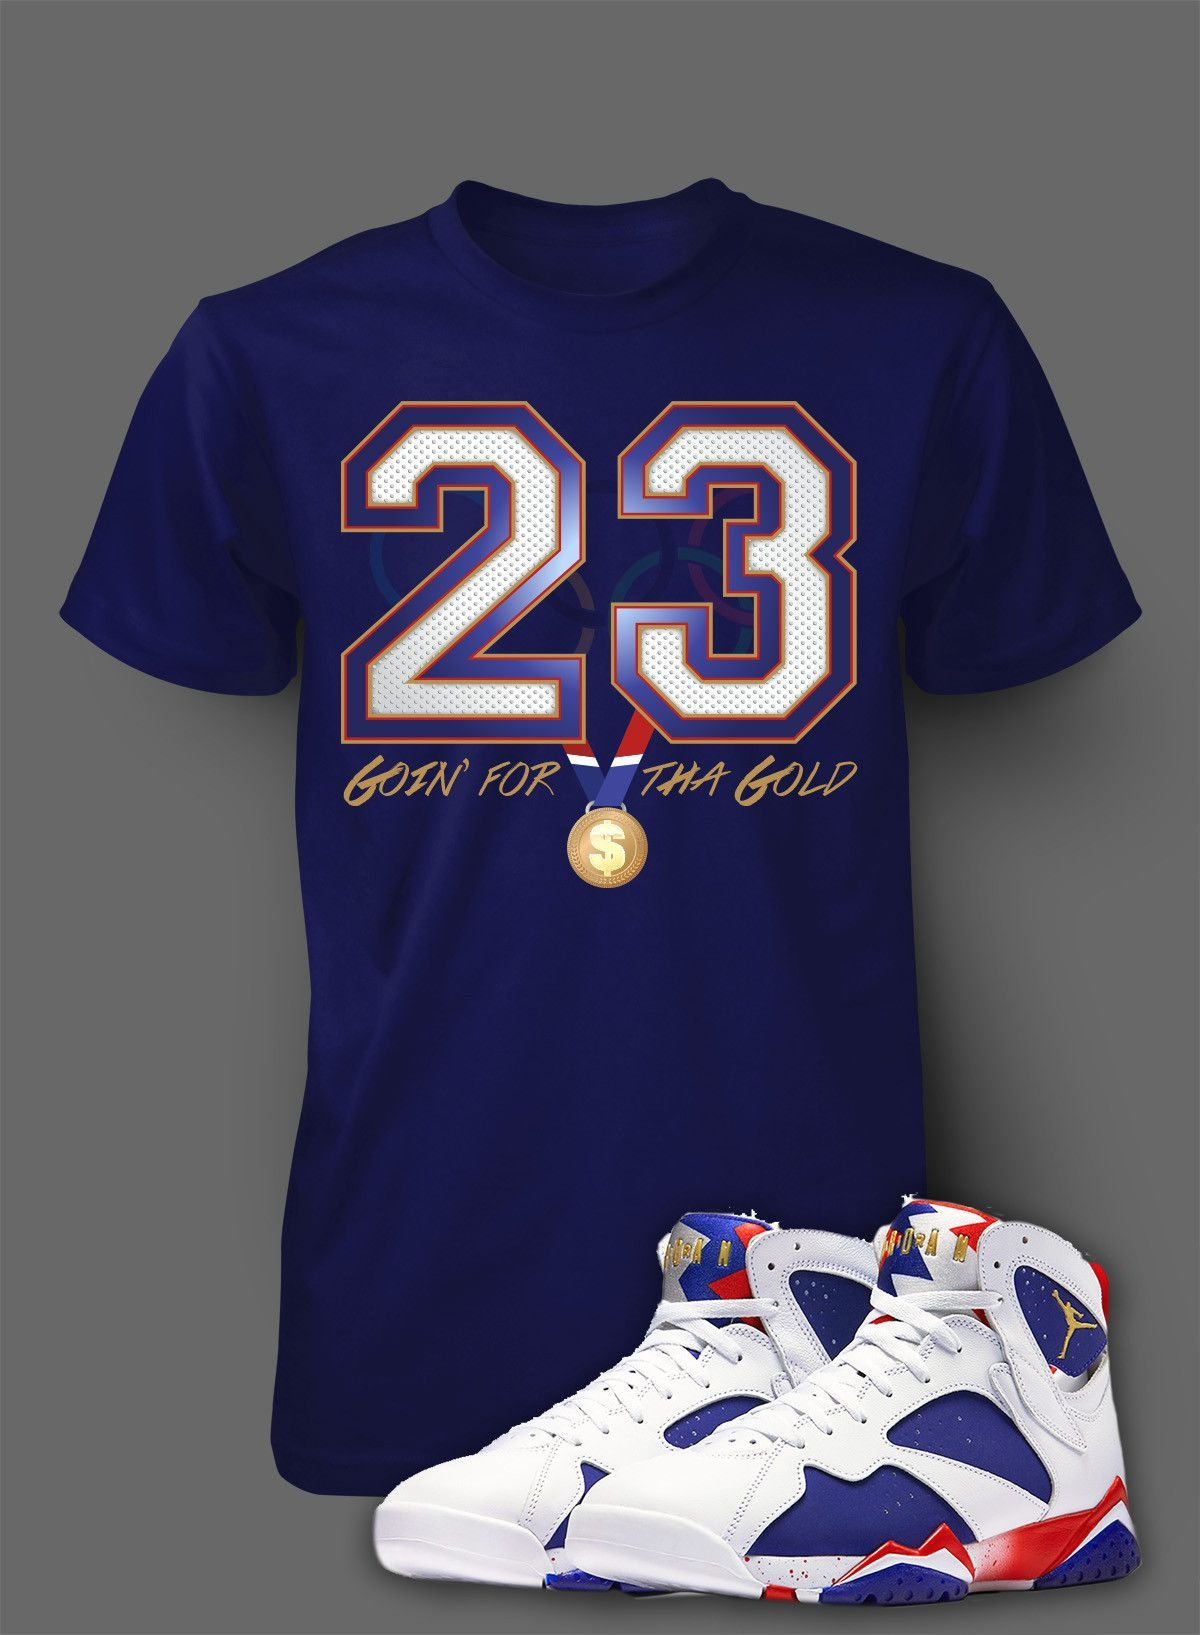 8b77d96a2f03df Graphic T Shirt To Match Retro Air Jordan 7 Olympic Shoe in 2019 ...